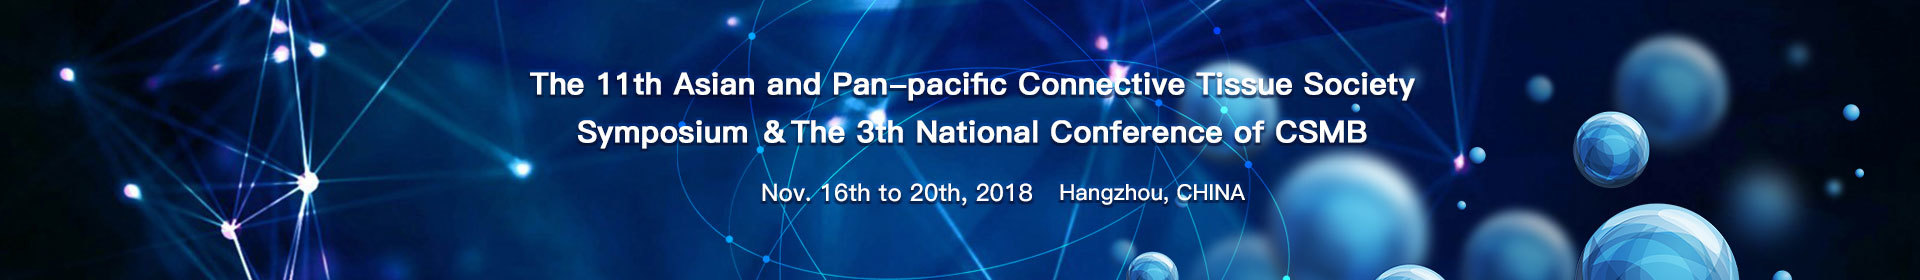 The 11th Asian and Pan-pacific Connective Tissue Societies Symposium & The 3rd National Conference of CSMB